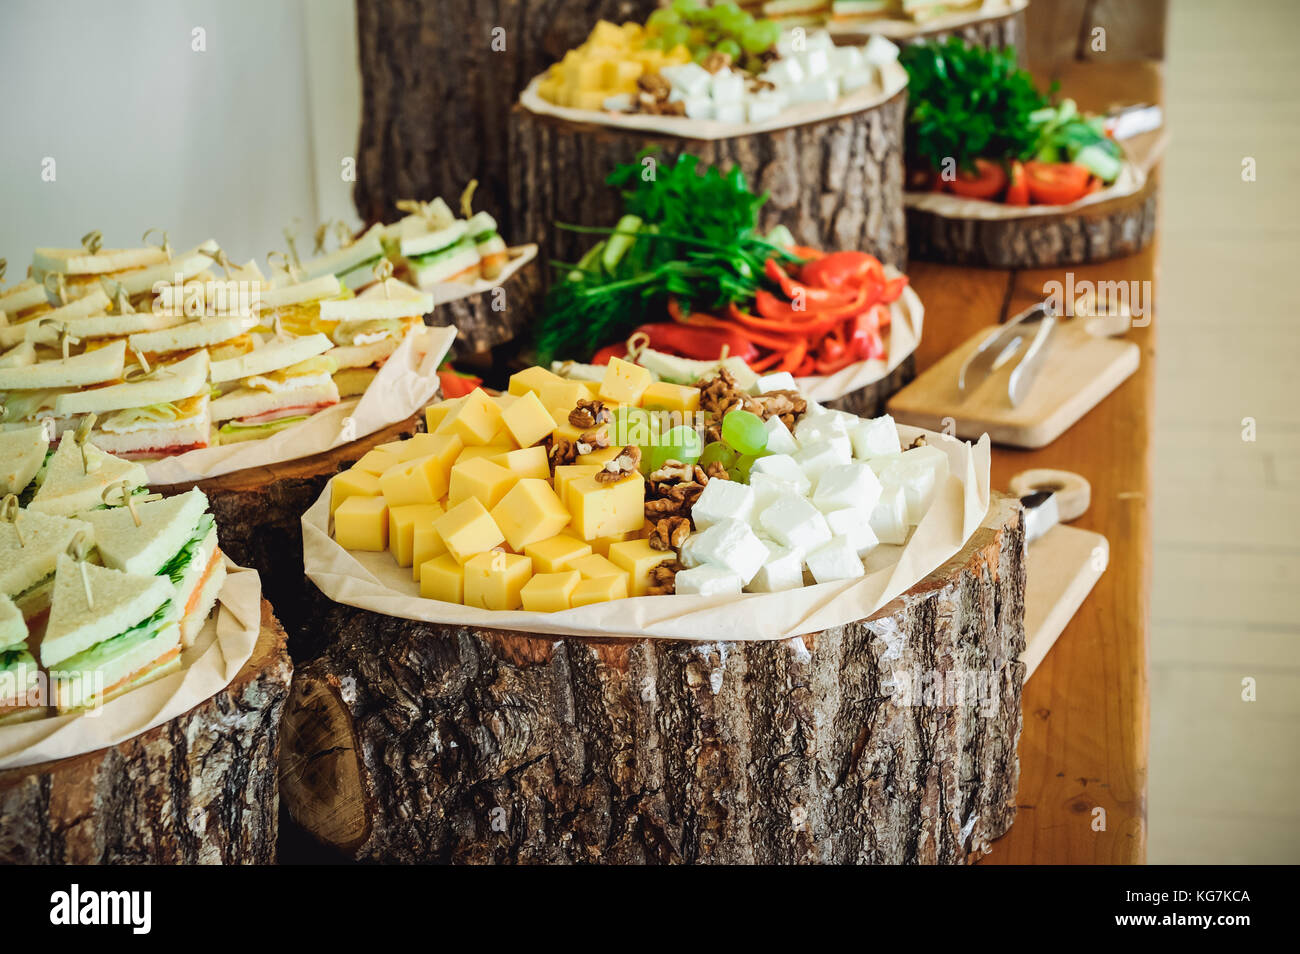 Awesome Outside Catering Buffet Table With A Delicious Food For Download Free Architecture Designs Scobabritishbridgeorg